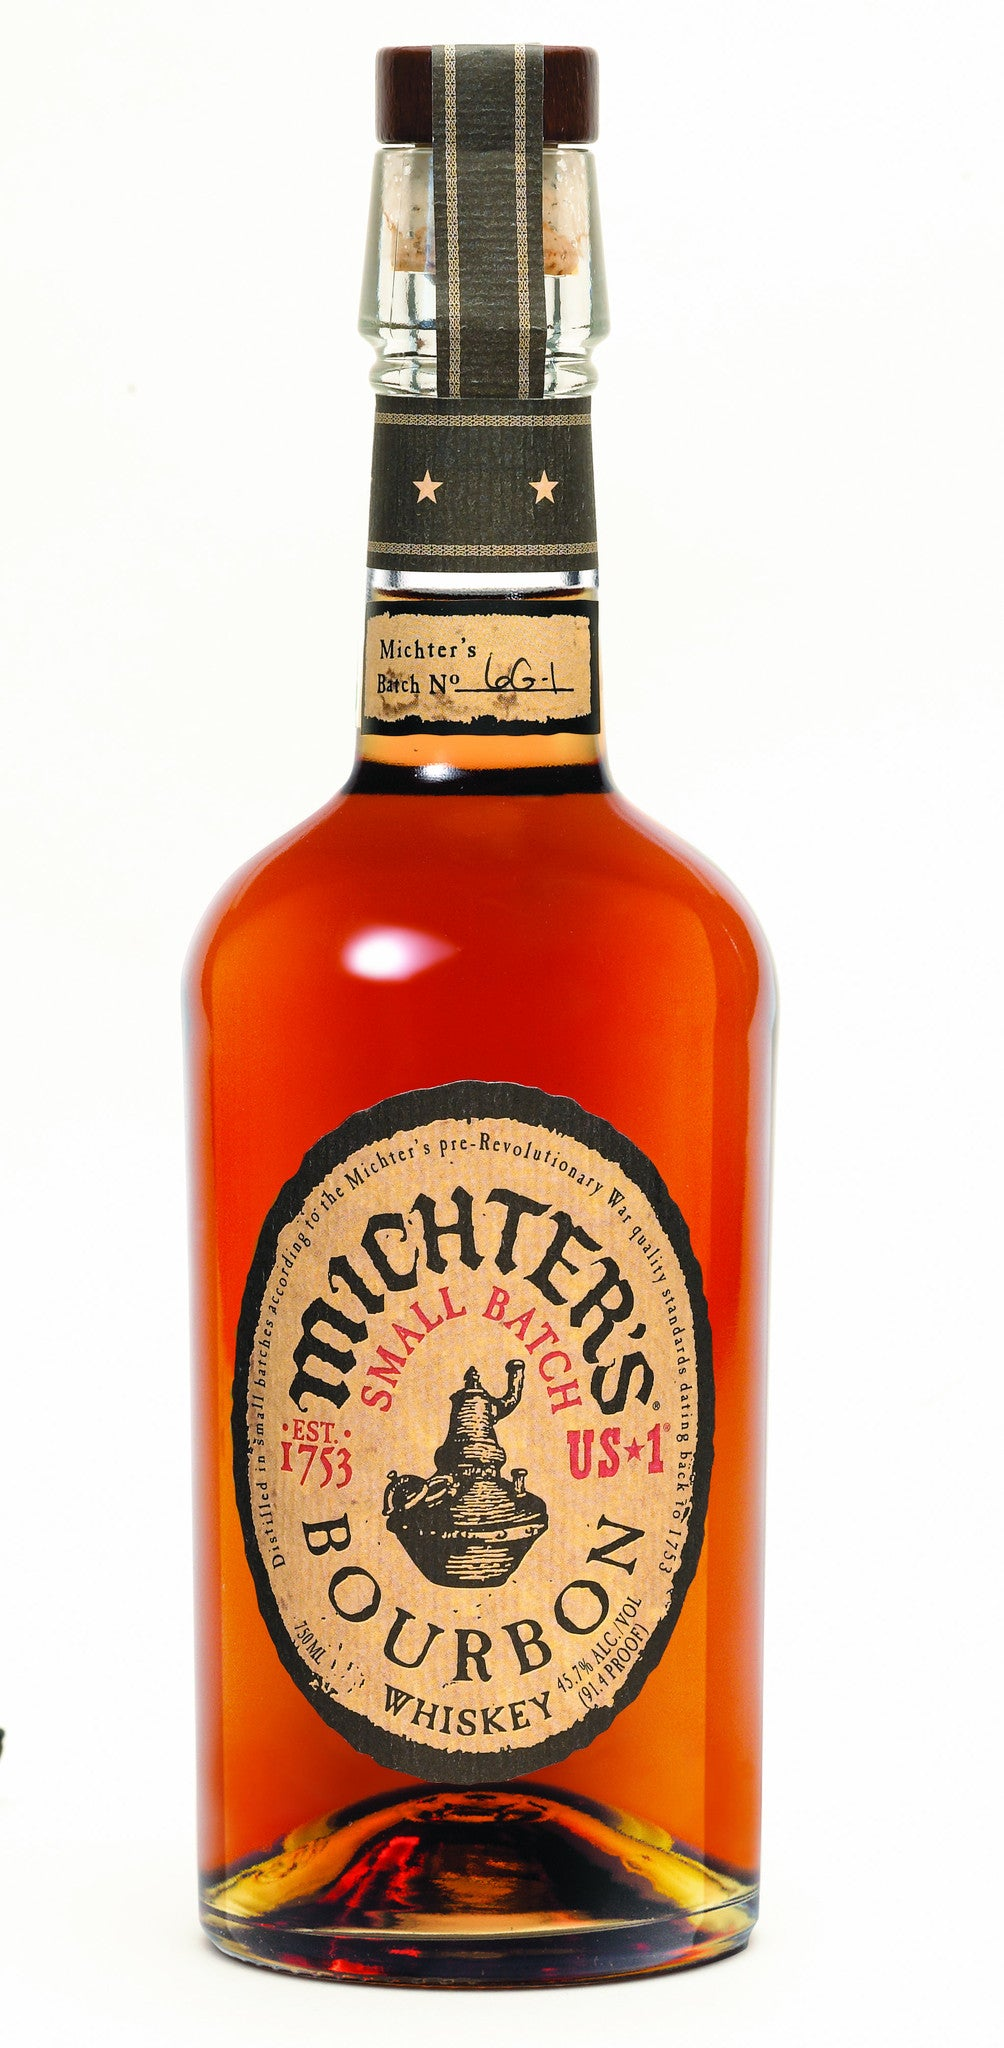 Michter's US *1 Small Batch Bourbon